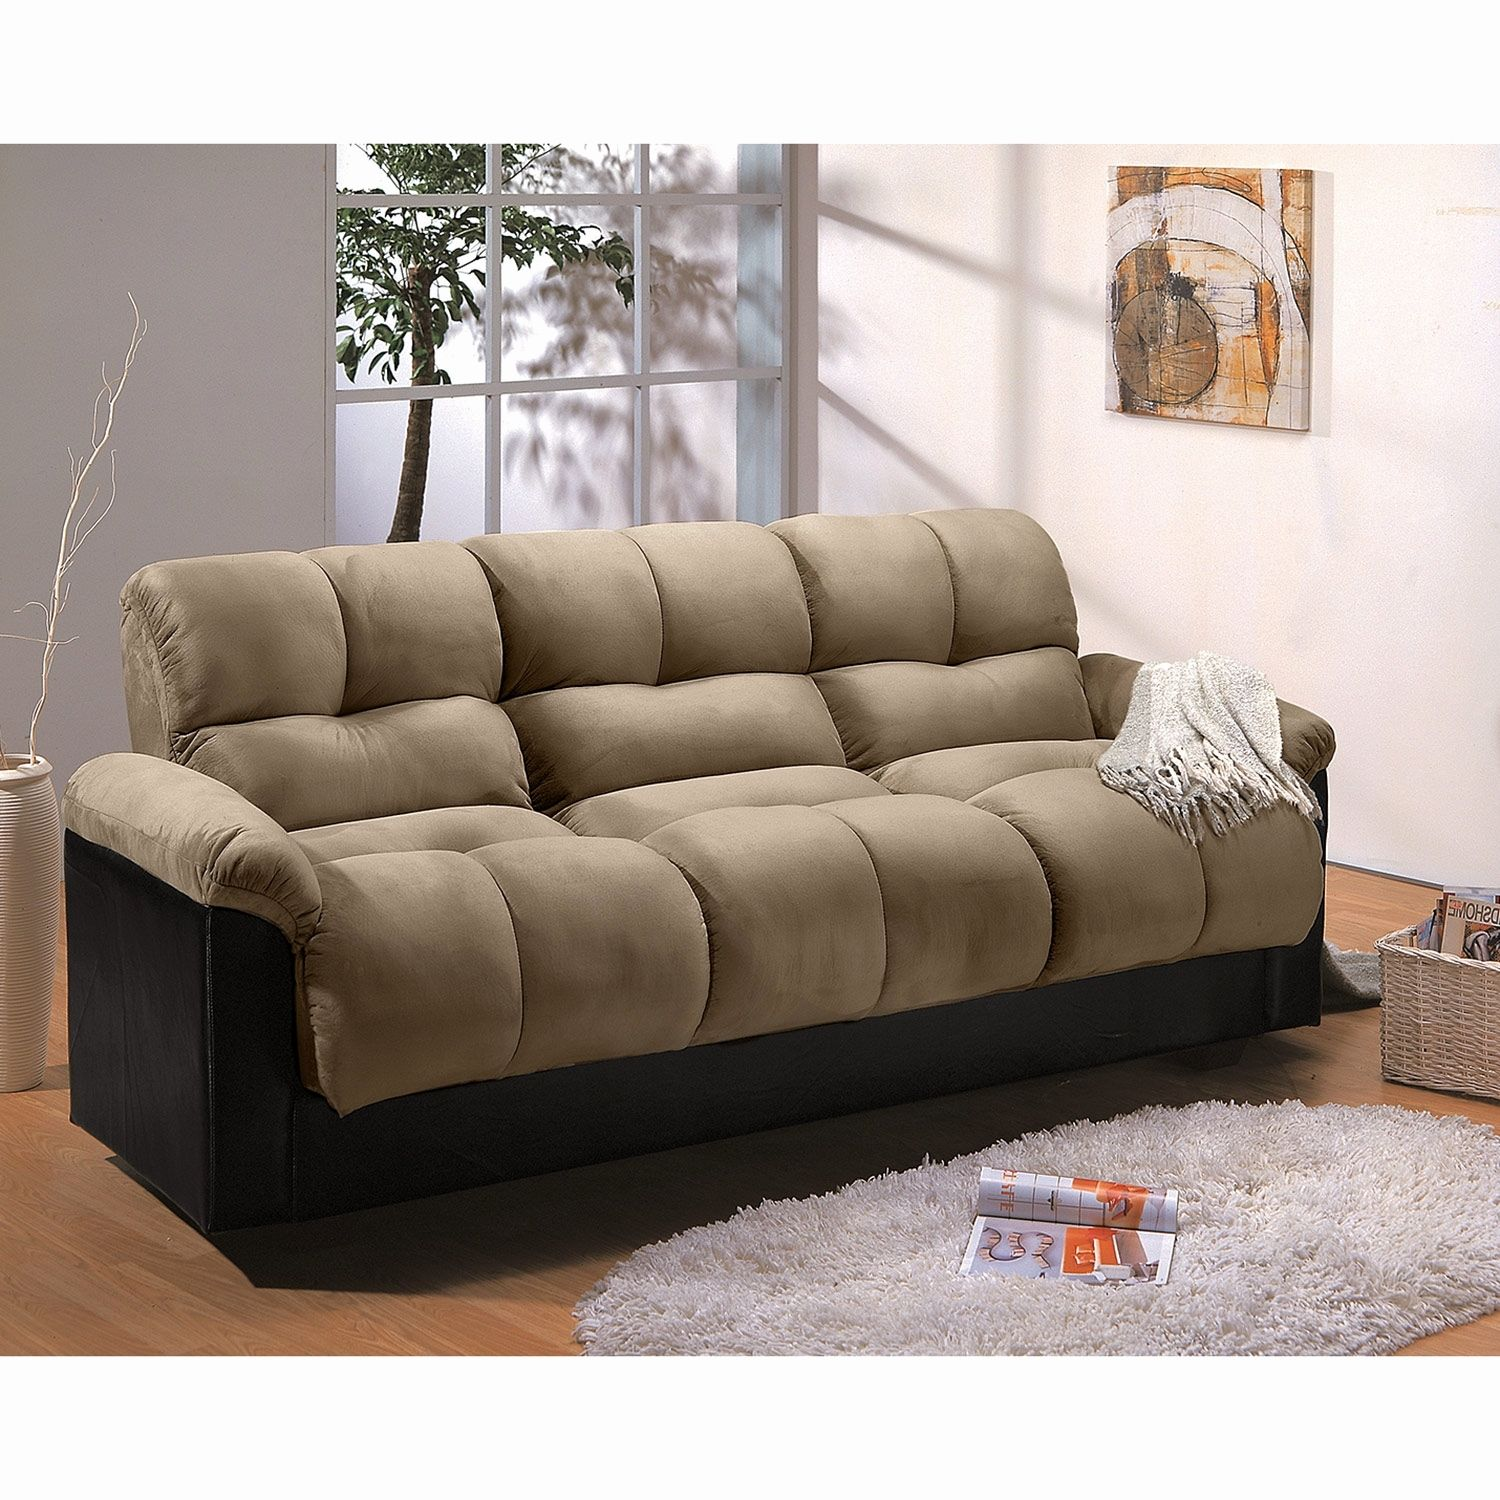 Sleeper Sessel Pull Out Chair Bett Und Sofa Pull Out Schwelle